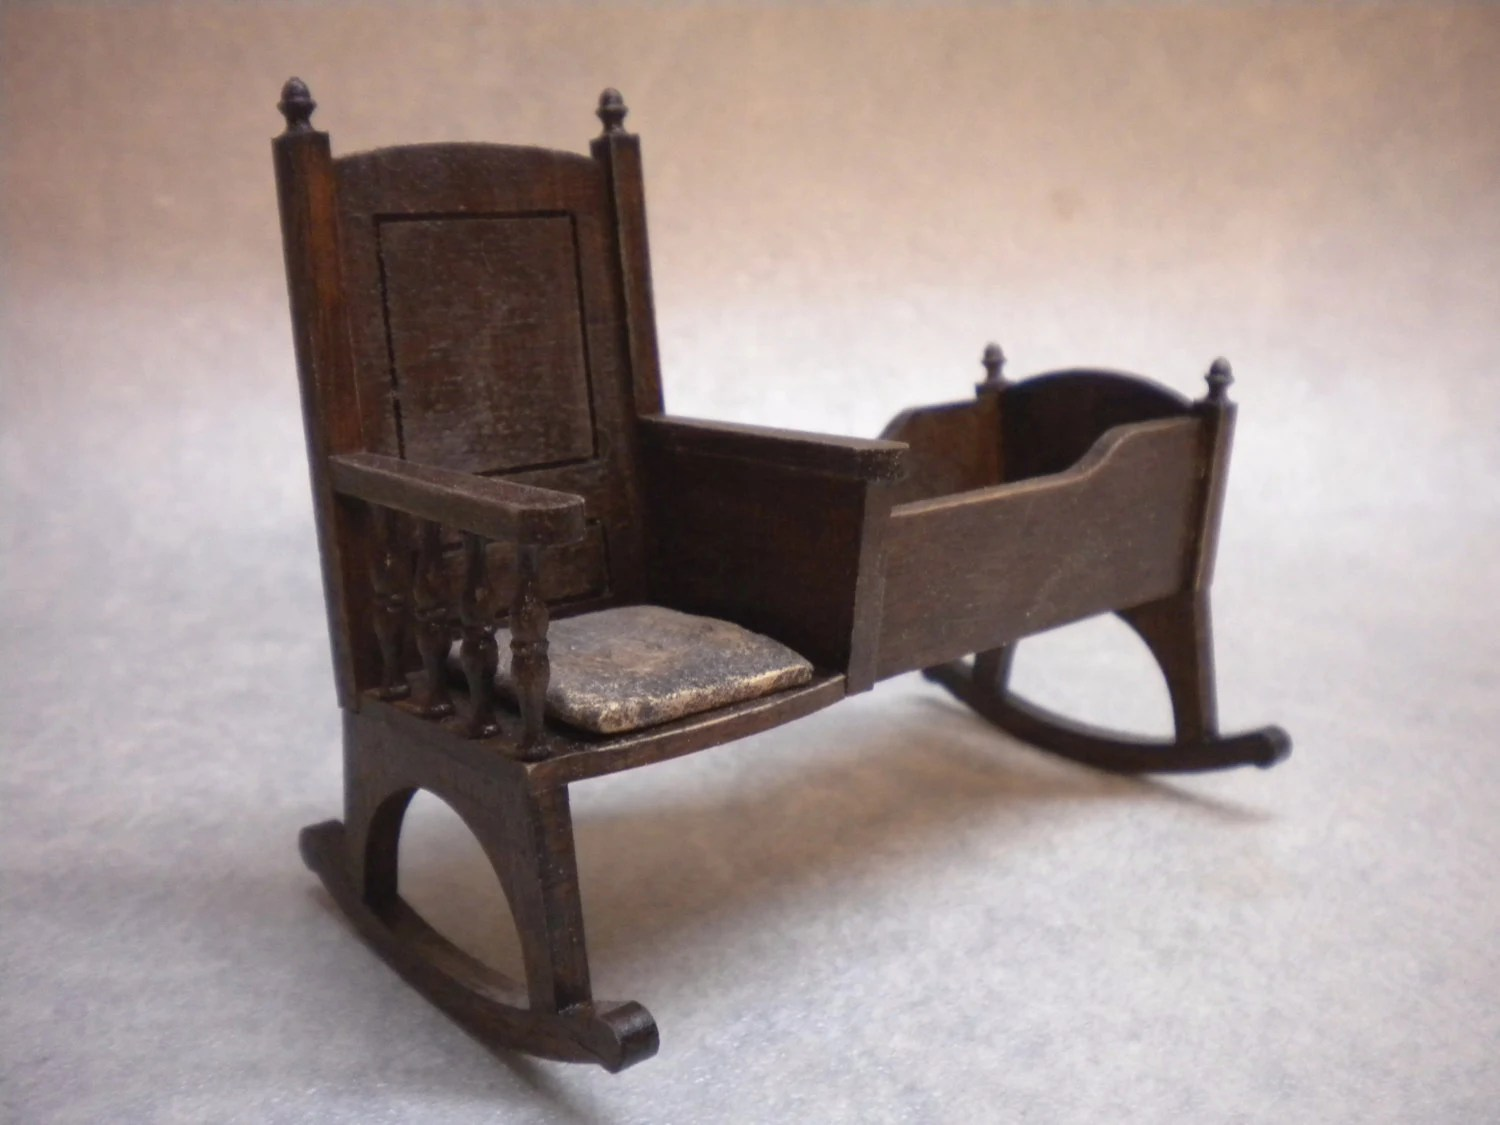 rocking chair cradle cover rentals trinidad one inch doll house nursery crib cot historic